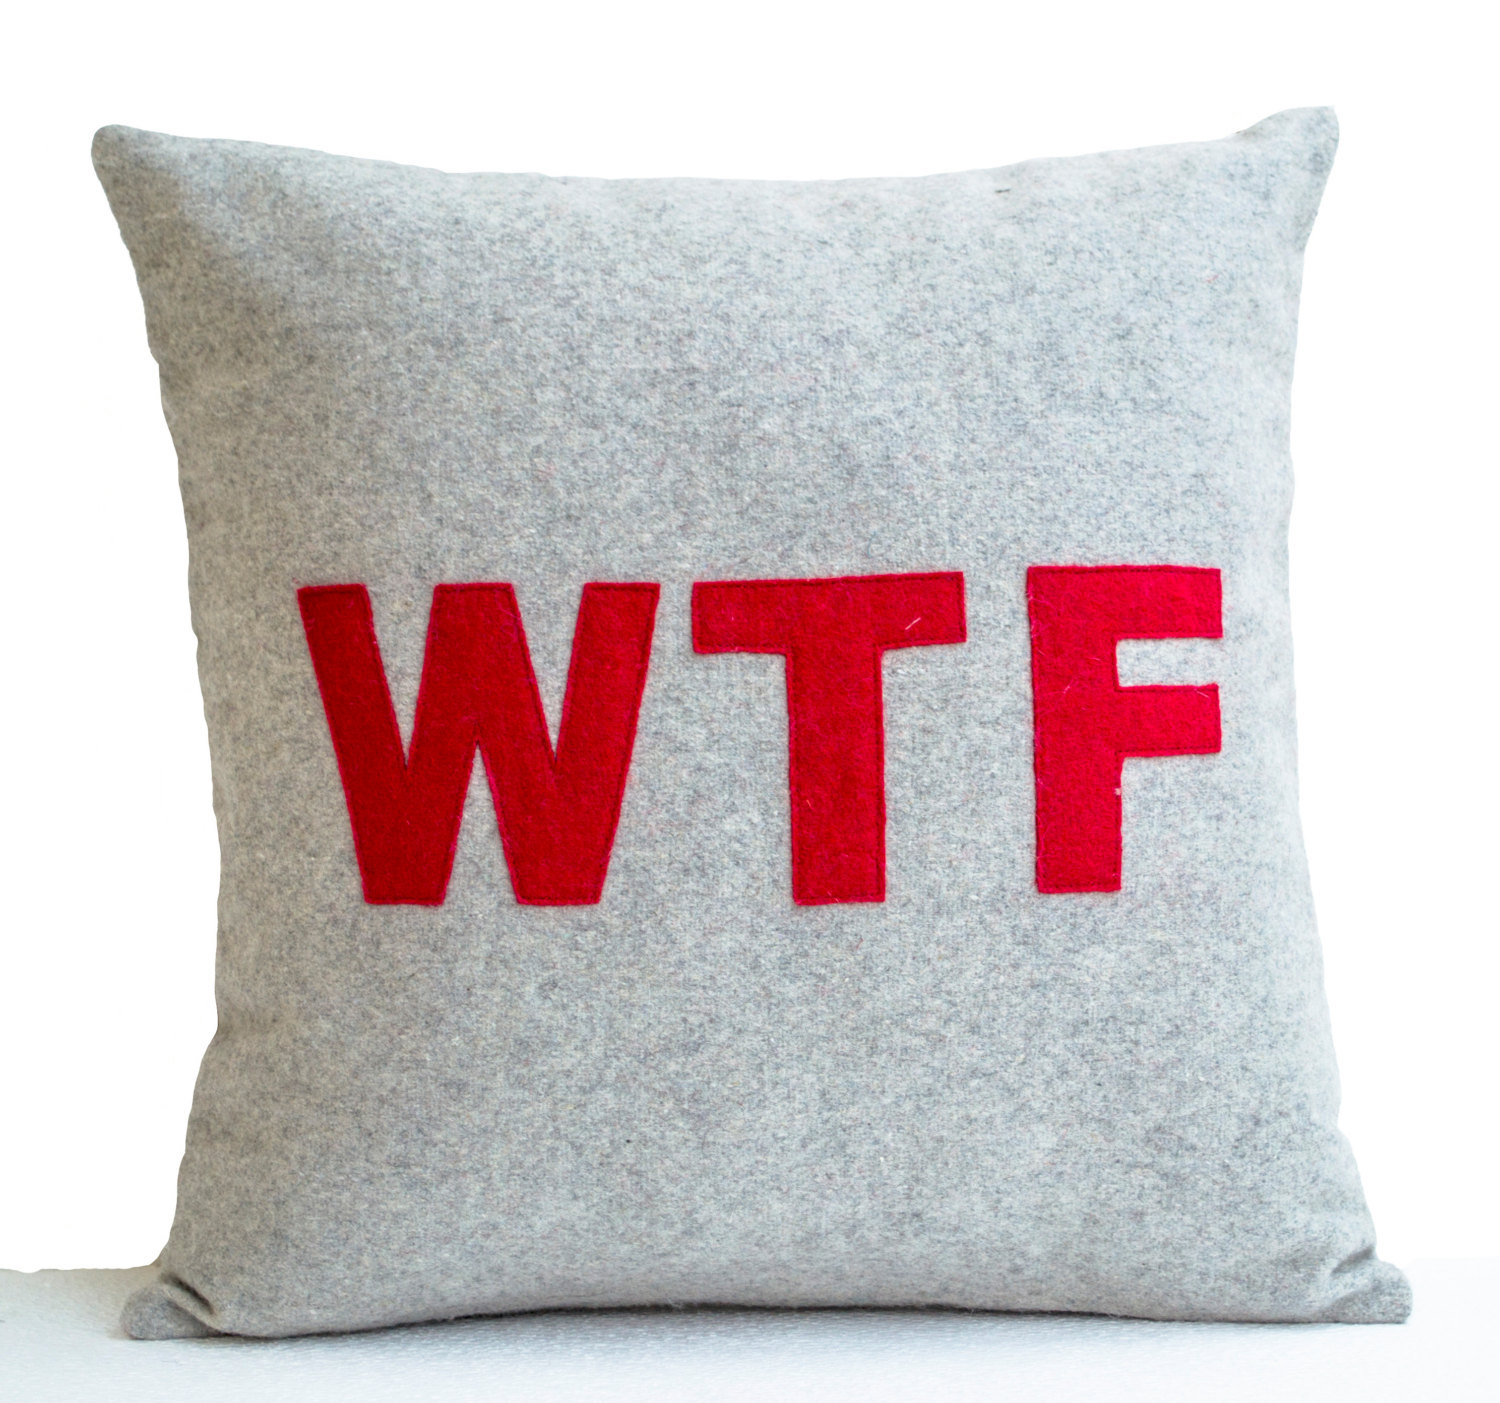 Decorative Pillows For Dorm Rooms : WTF Grey Gray Felt Throw Pillow Cover Decorative Pillow Cushion Dorm Decor Gifts - Pillows